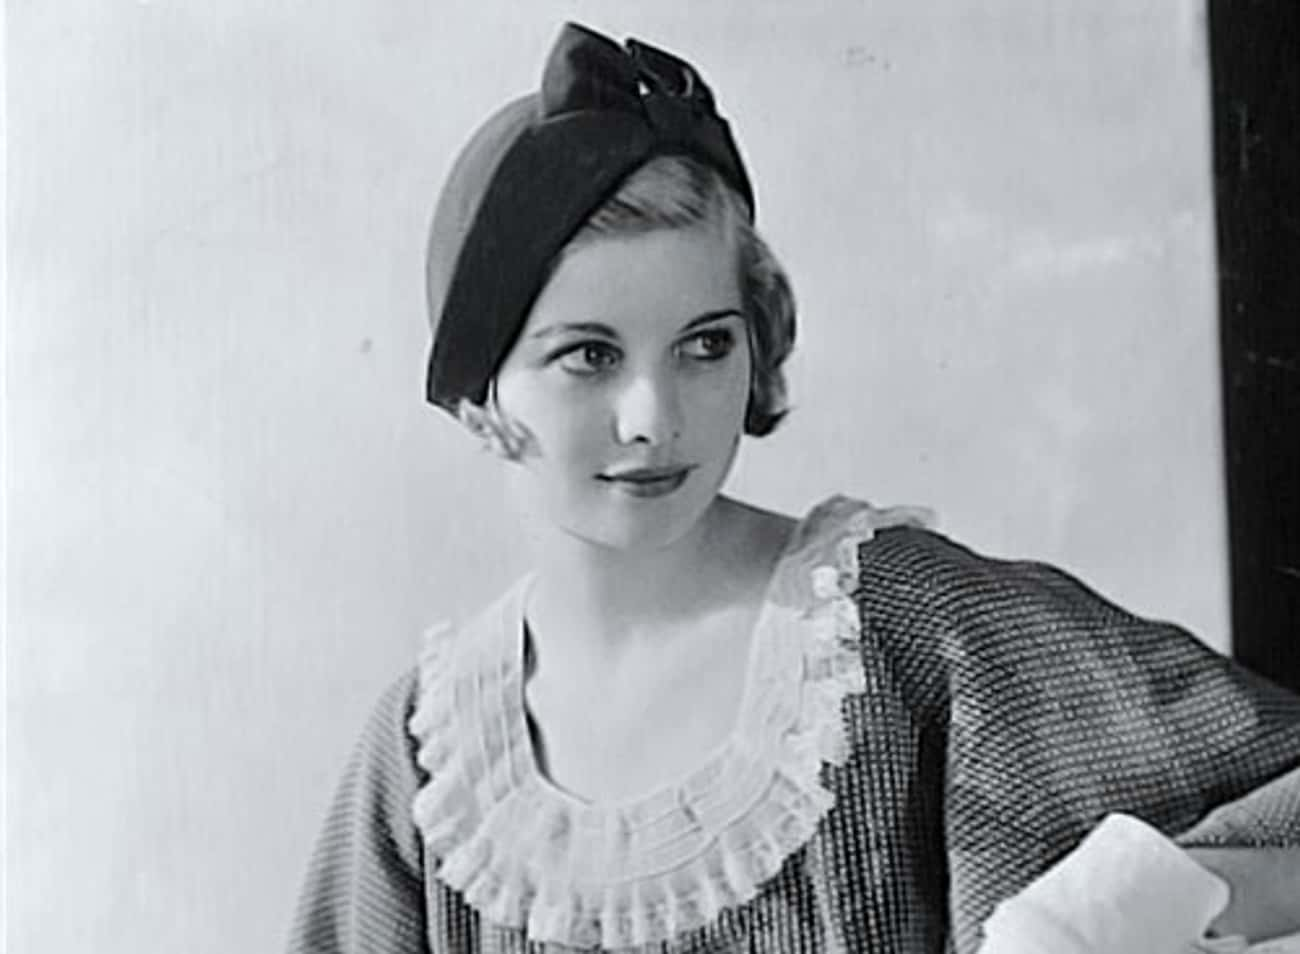 Young Lucille Ball in Checkere is listed (or ranked) 3 on the list 24 Pictures of Young Lucille Ball